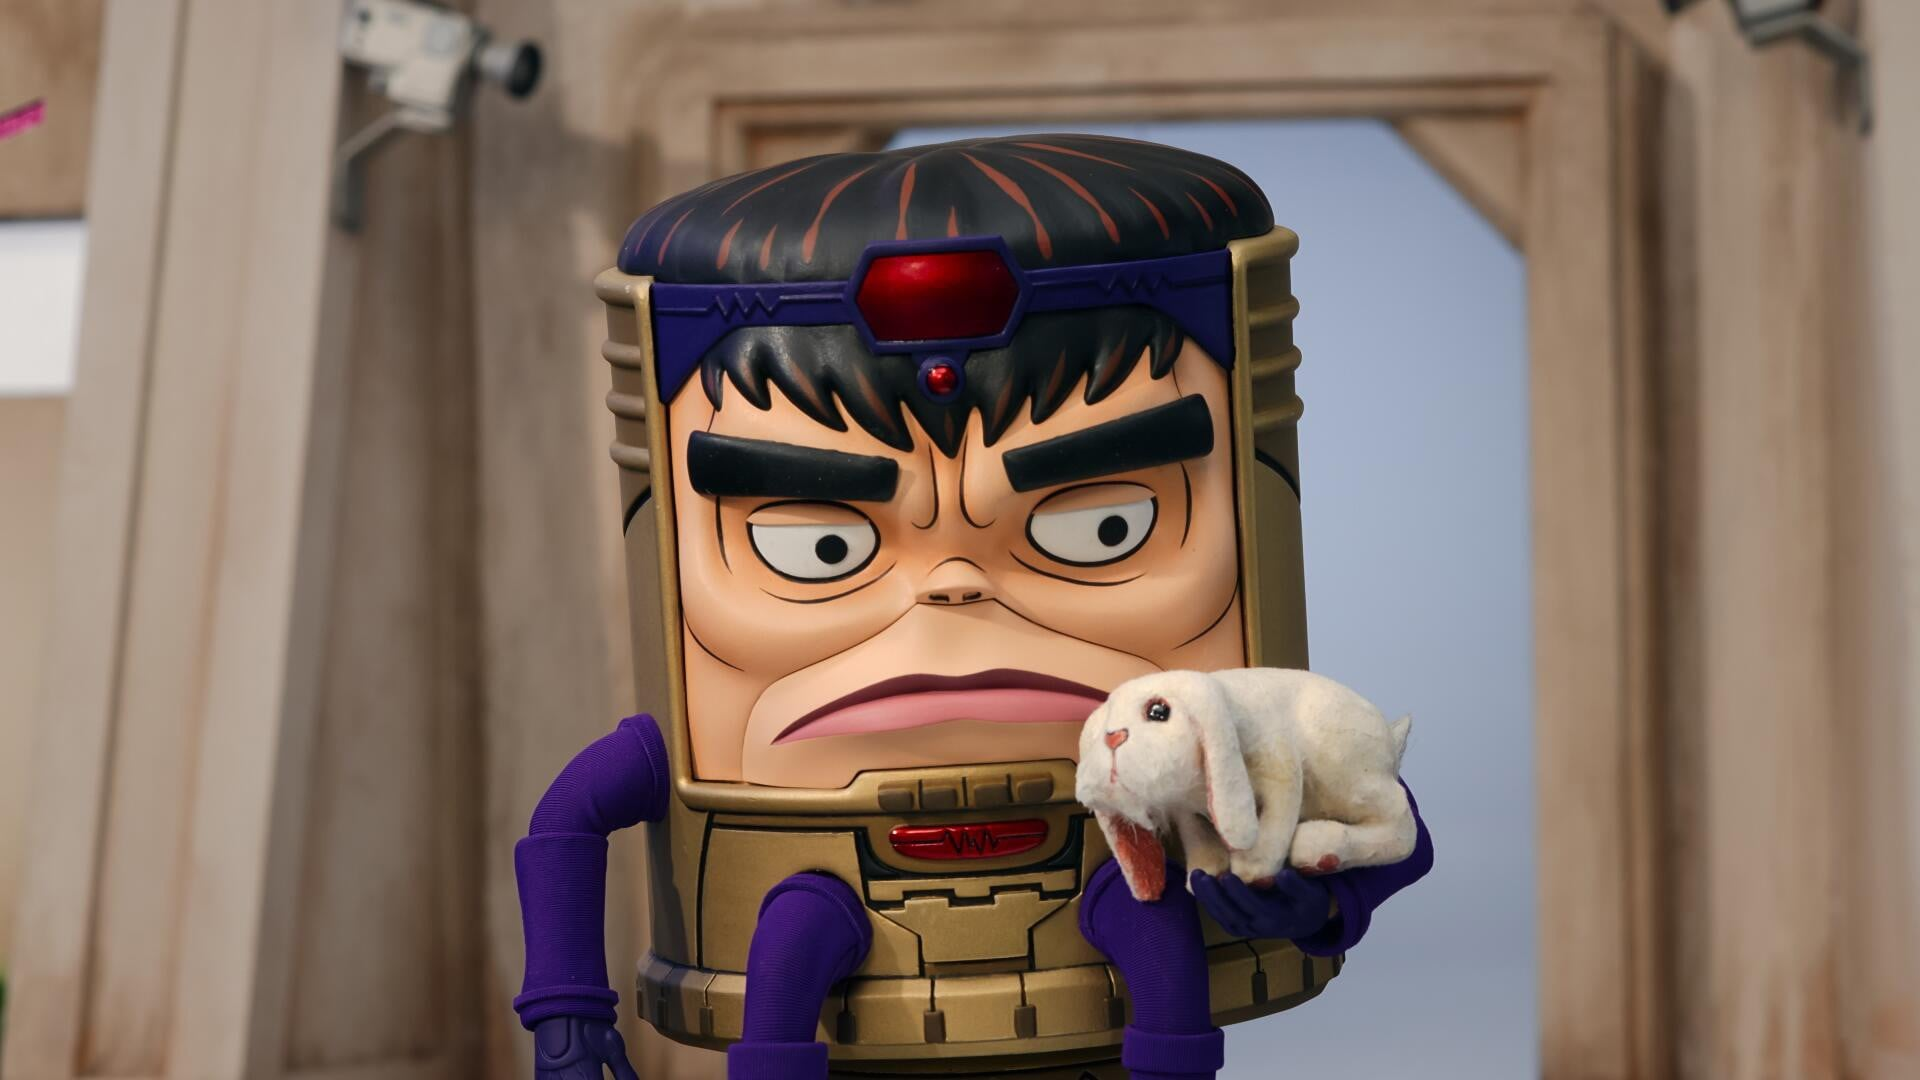 MARVEL'S M.O.D.O.K., (aka M.O.D.O.K., aka MODOK), MODOK (voice: Patton Oswalt), If This Be ... M.O.D.O.K.', (Season 1, ep. 101, aired May 21, 2021). photo: Hulu / Courtesy Everett Collection